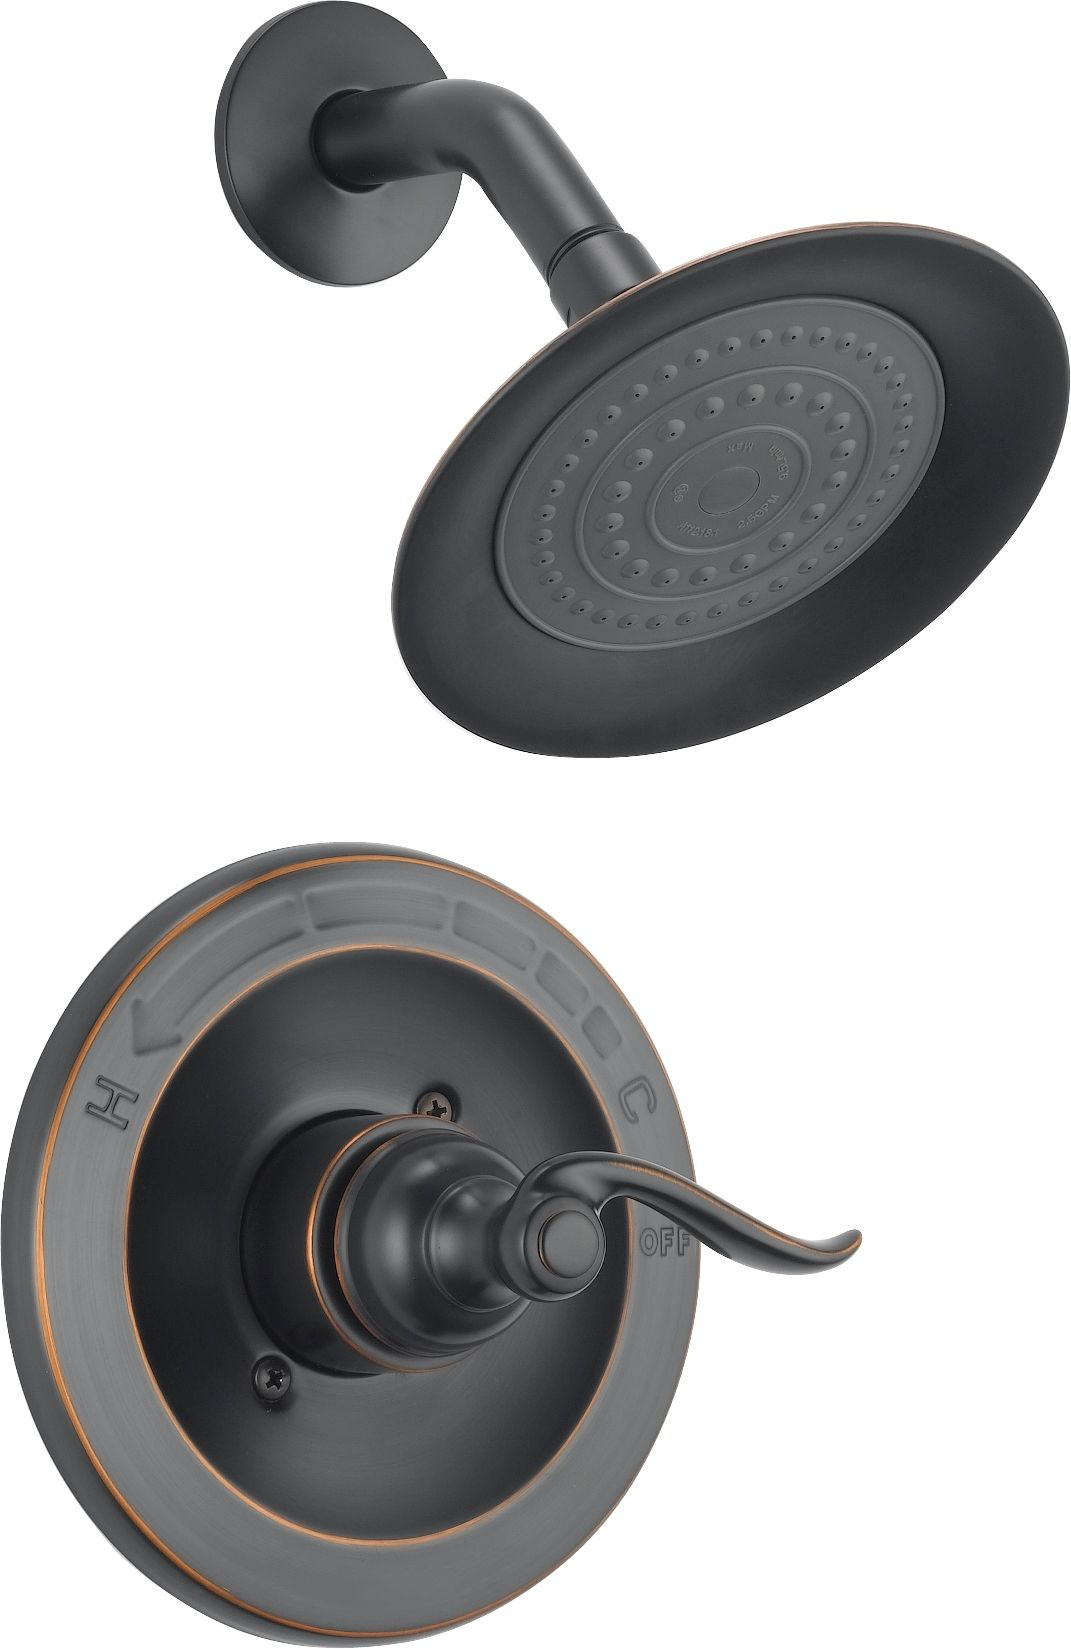 Incroyable Delta BT14296 OB Oil Rubbed Bronze Windemere Monitor 14 Series Single  Function Pressure Balanced Shower Trim Package   Less Rough In Valve    Faucet.com